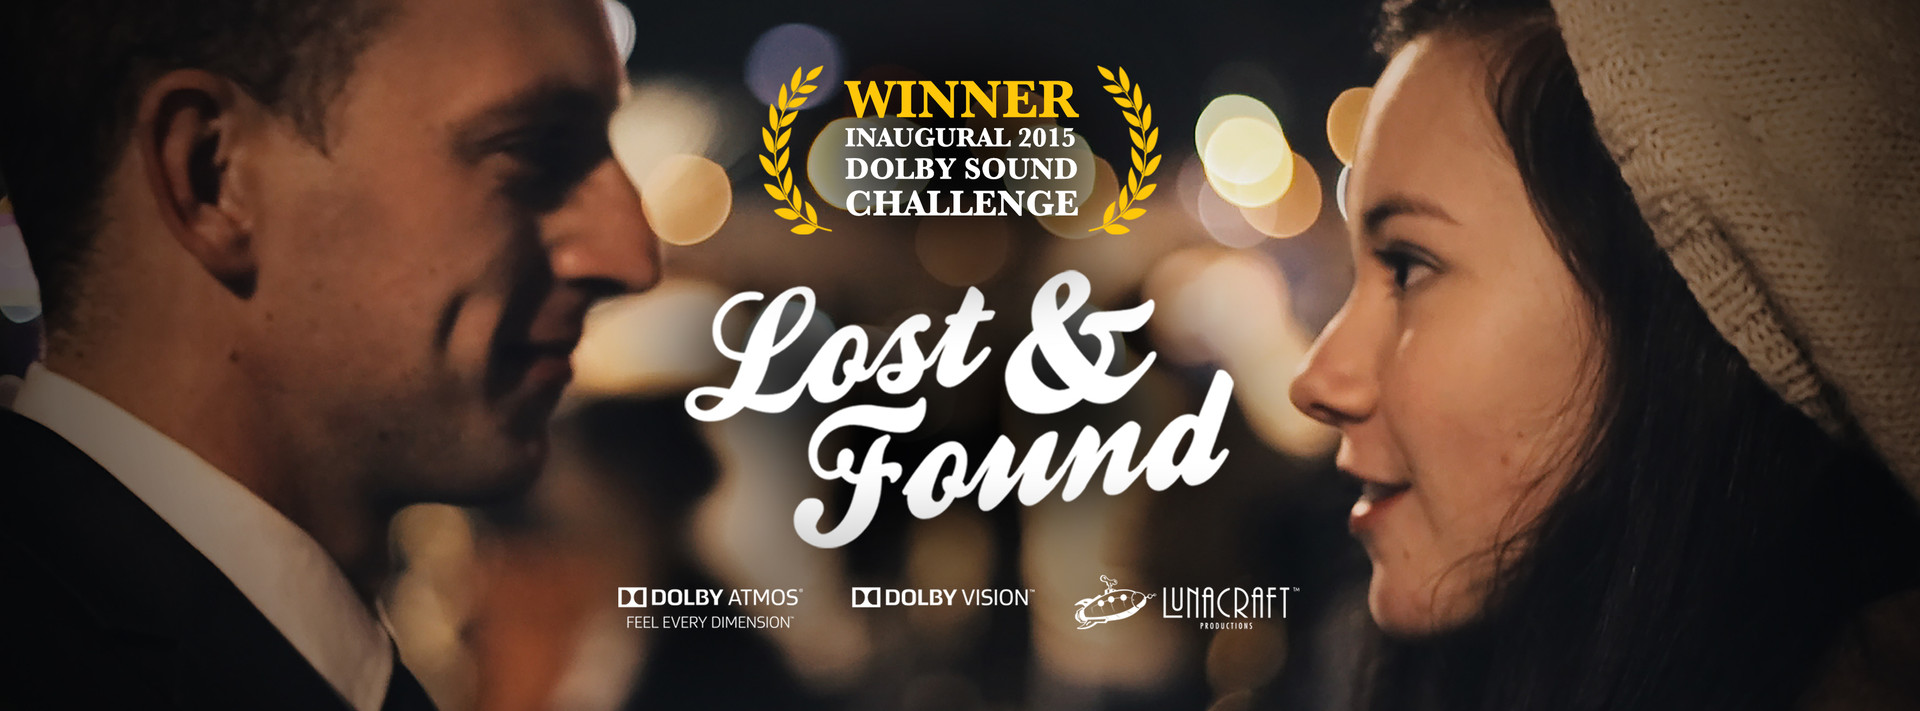 Lost And Found WINNER Cover photo_Final.